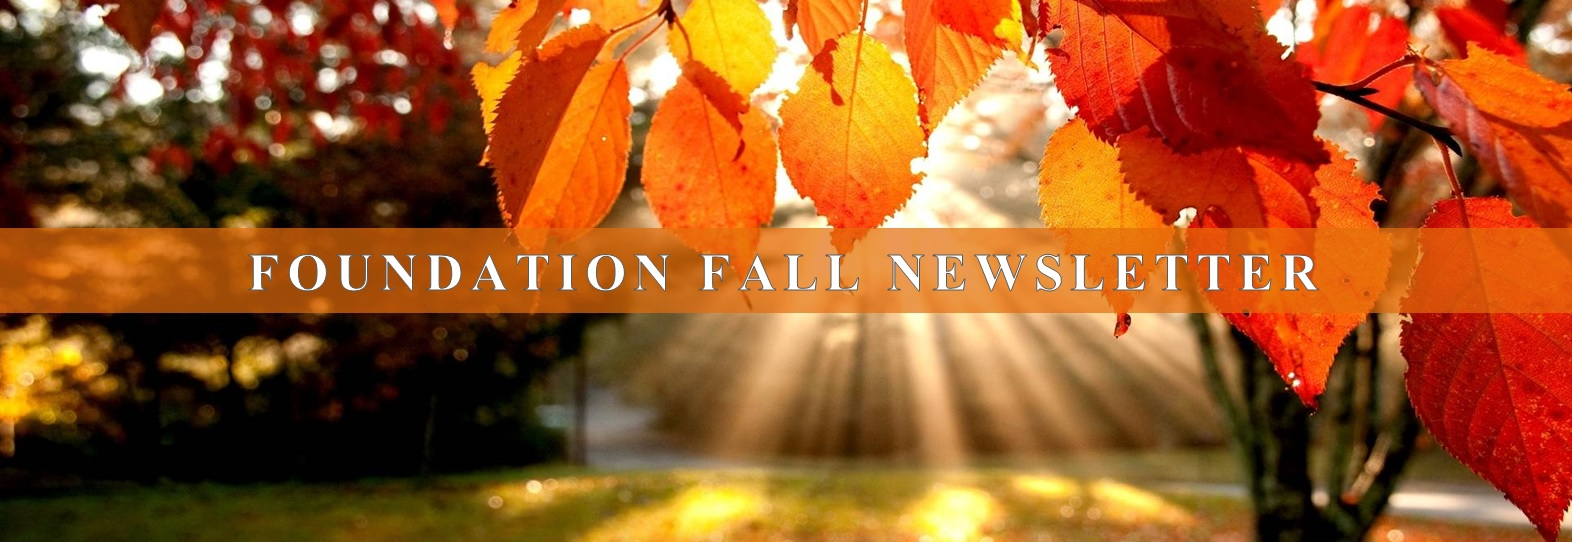 Foundation Fall Newsletter Header